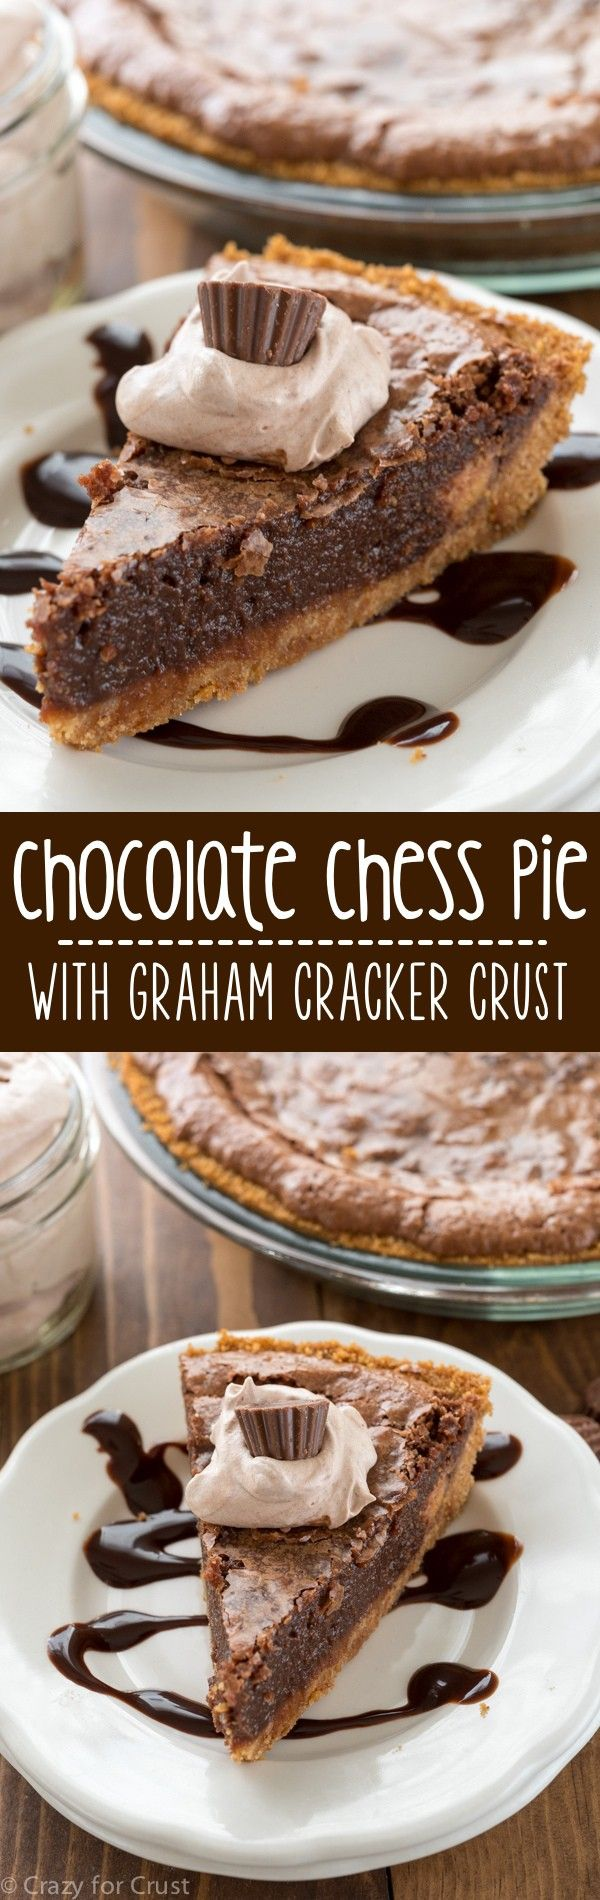 Best 25+ Chocolate chess pie ideas on Pinterest   What is chess ...